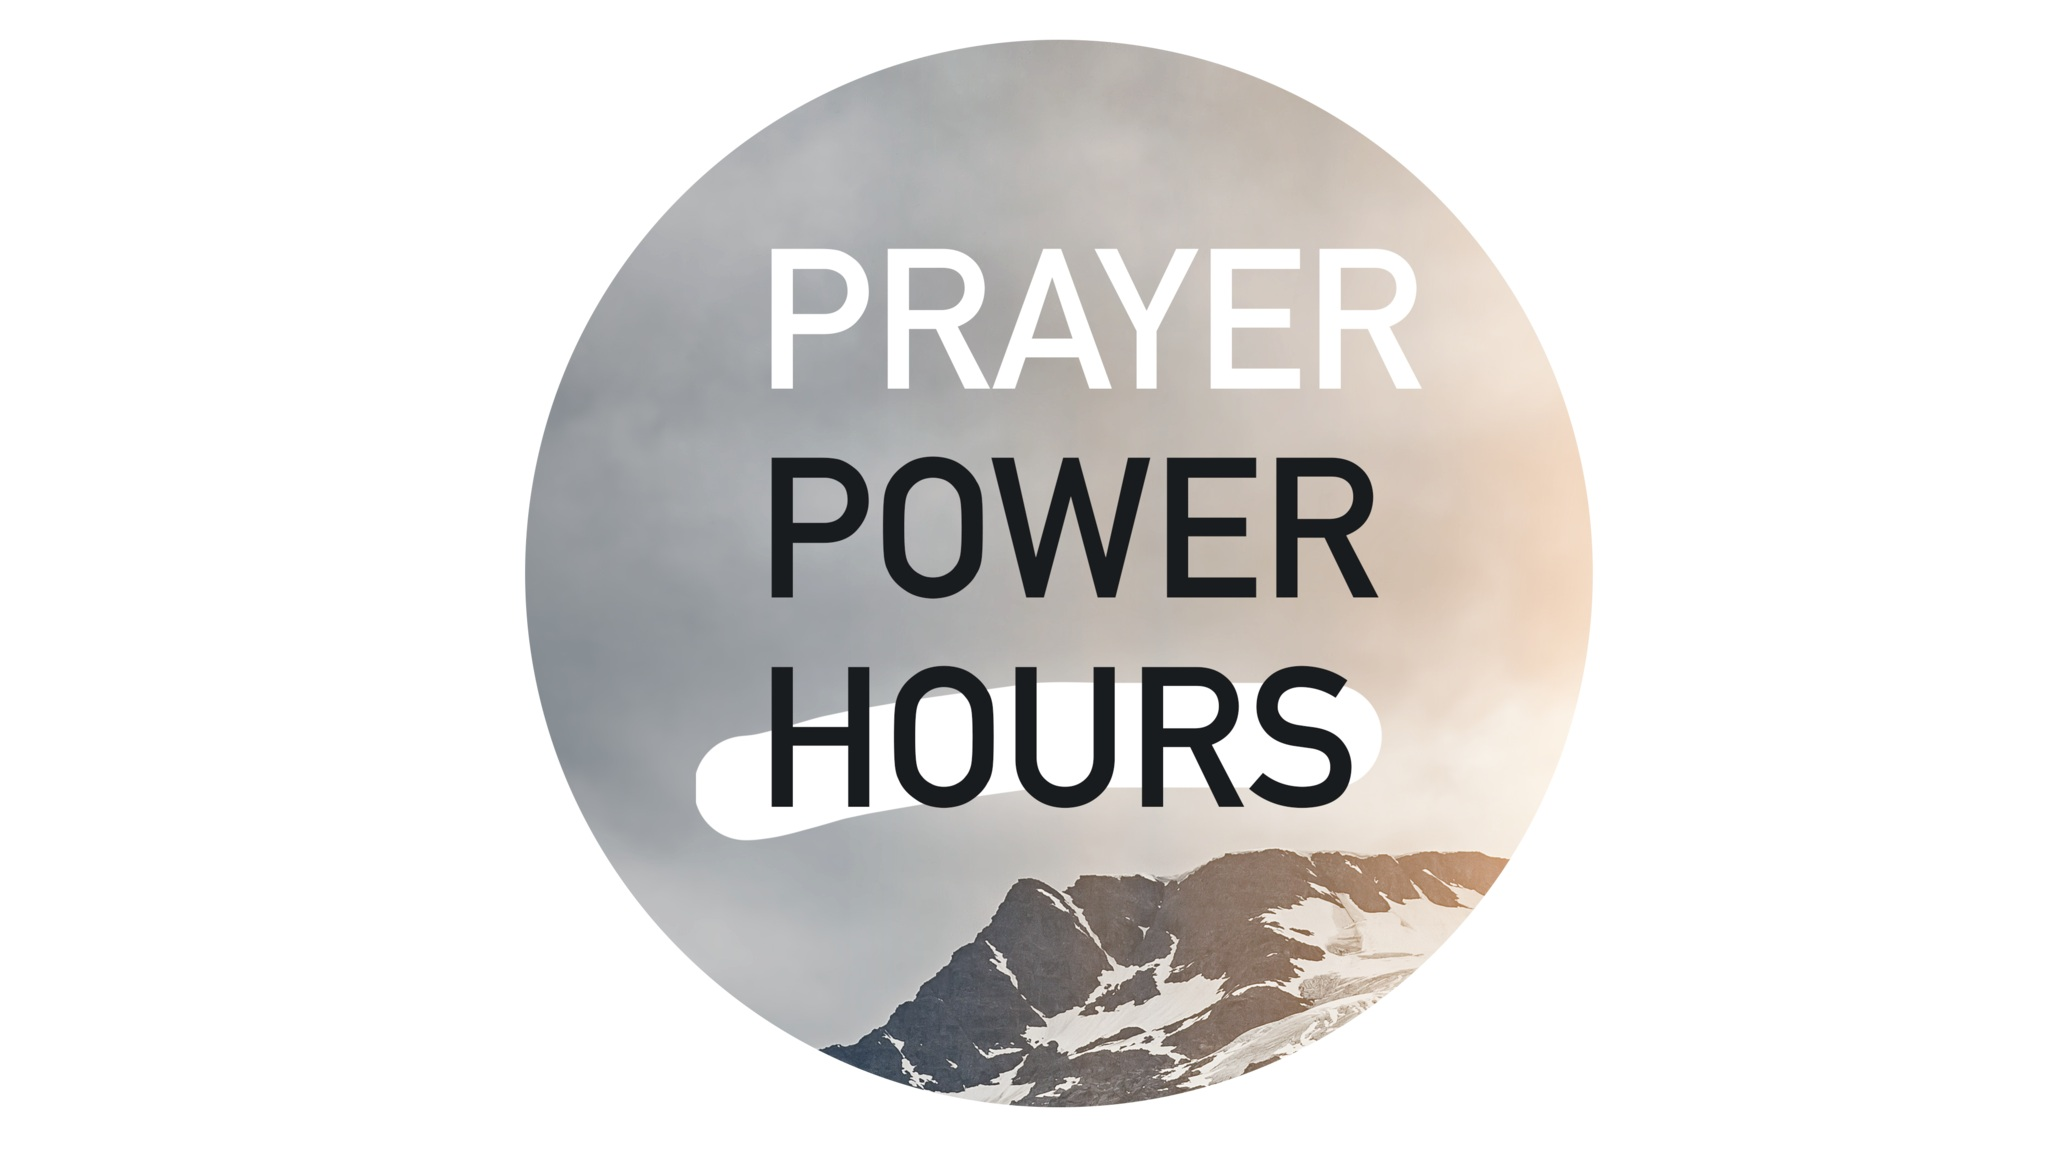 prayer+power+hours.jpg